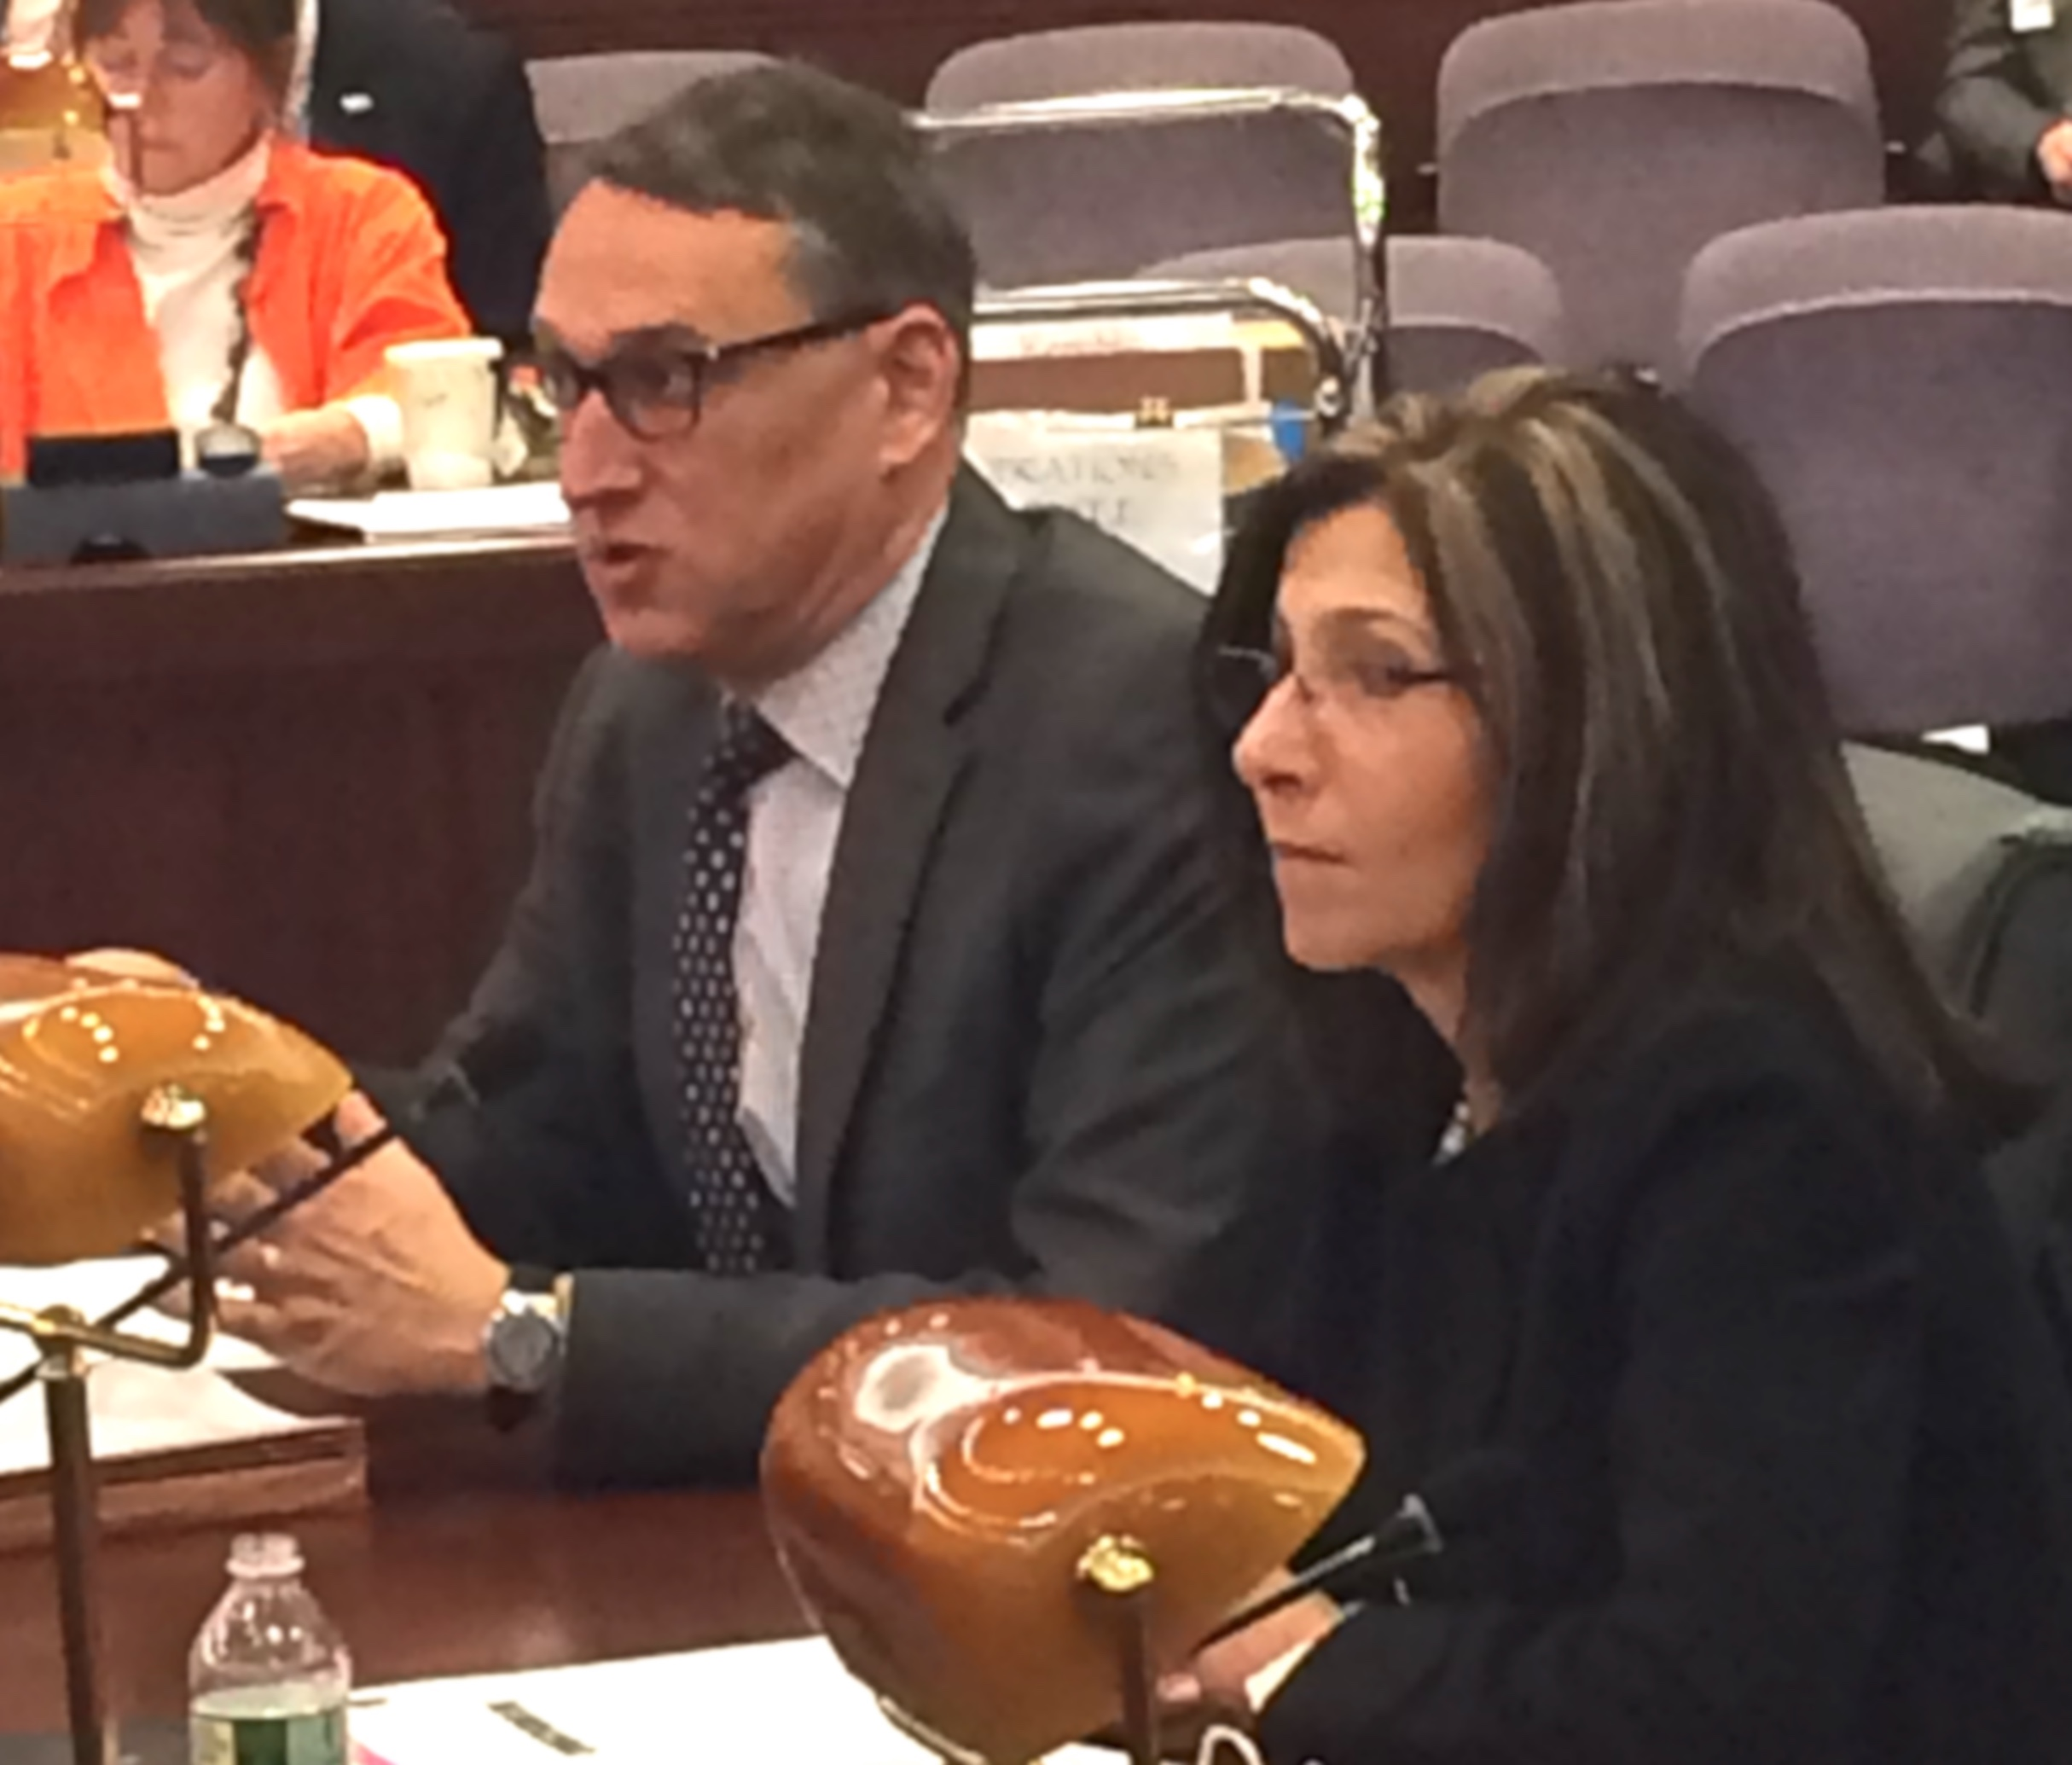 Budget panel backs deal to stretch out spiking CT pension costs